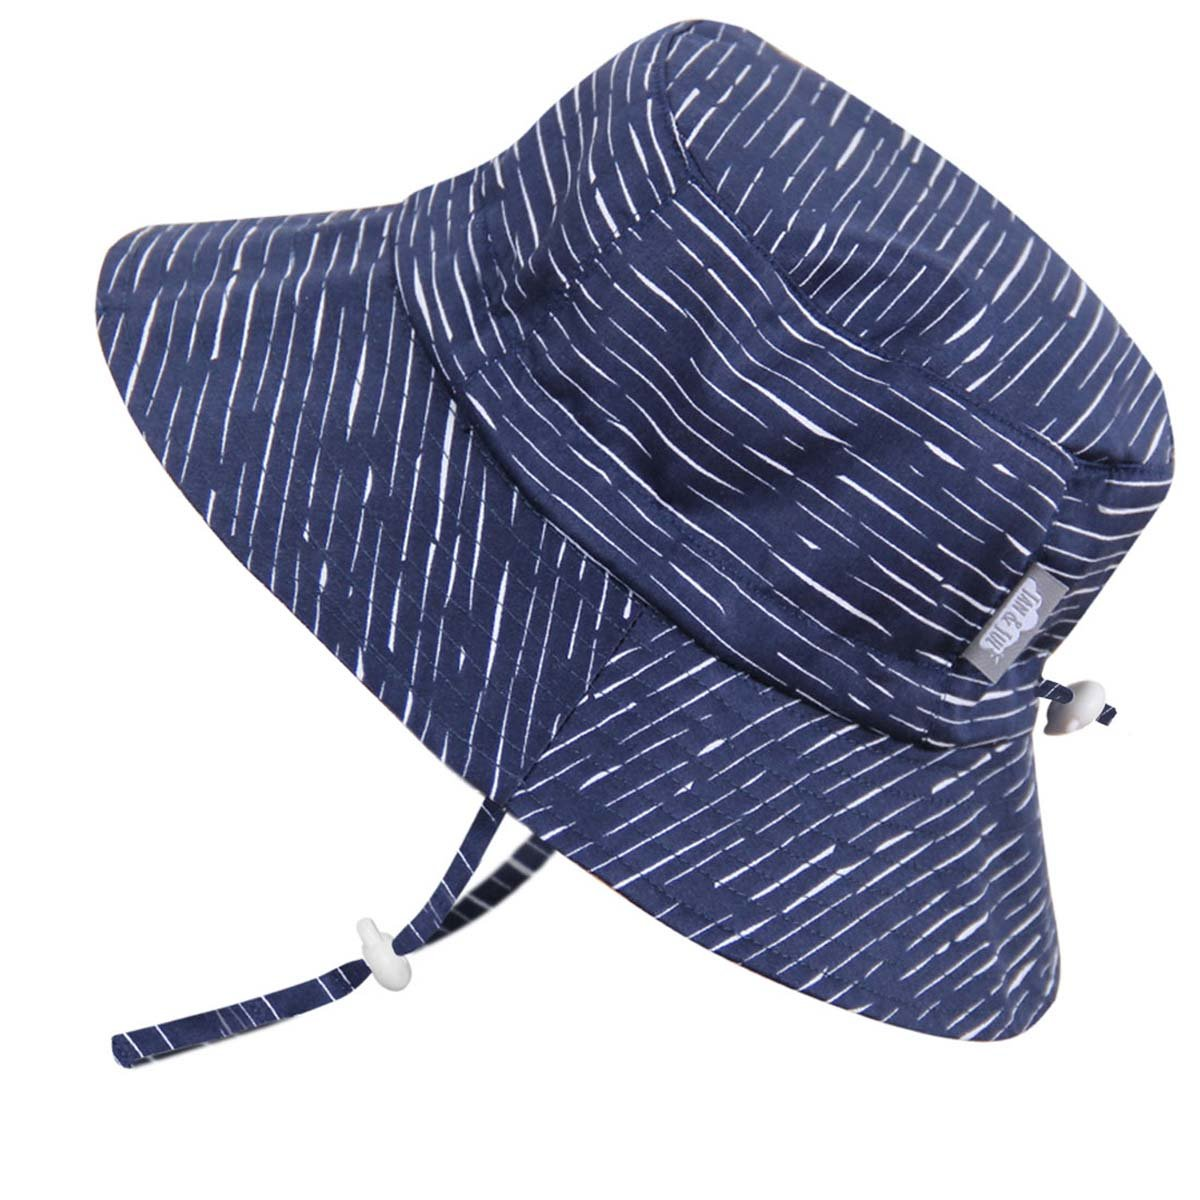 Stay-on Boys Sun Protection Hats 50+ UPF, Drawstring Adjustable, Breathable (L: 2-12Y, Bucket Hat: Navy Waves)